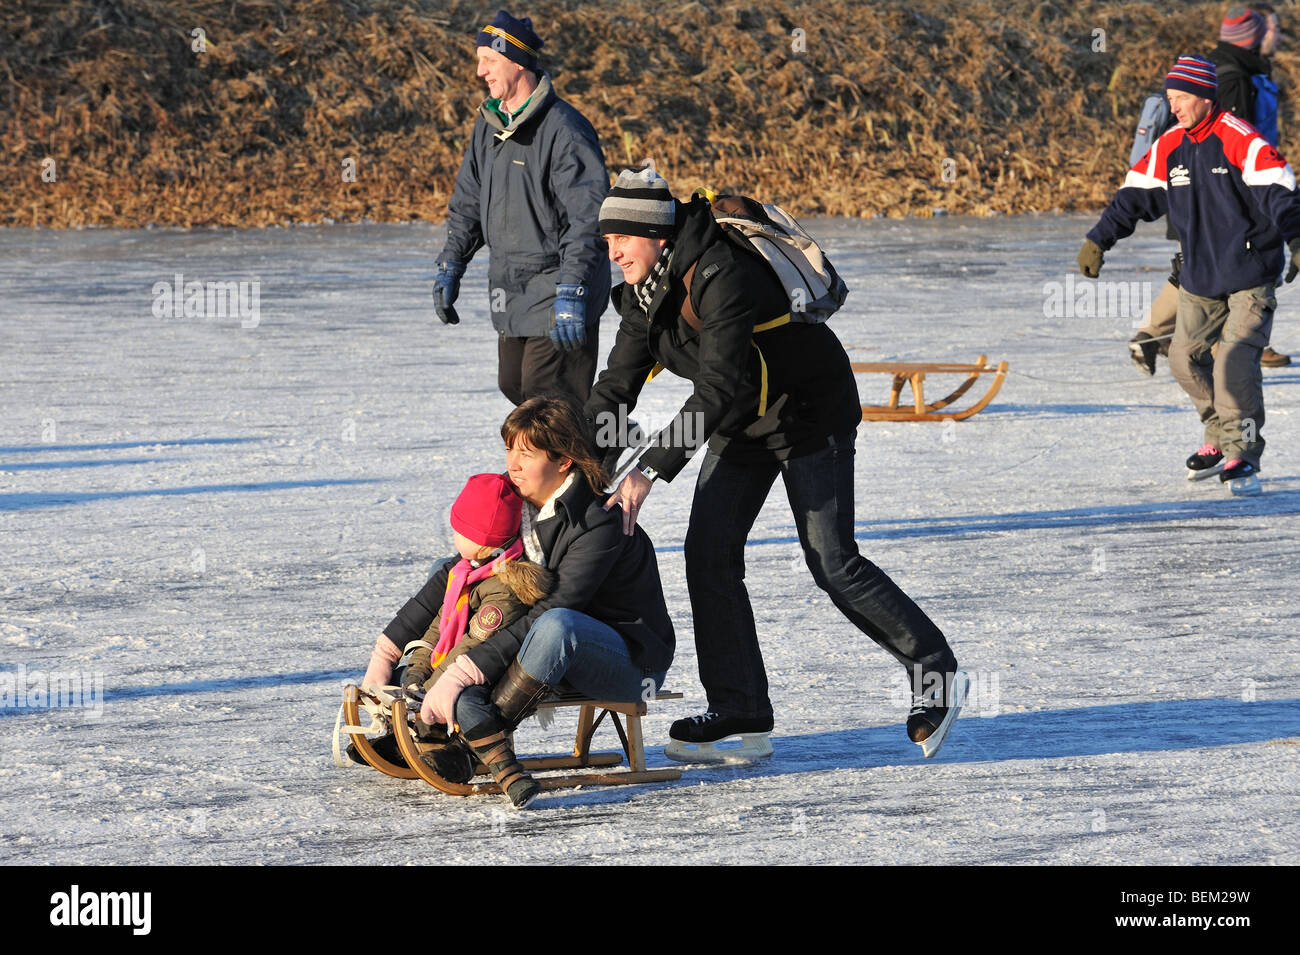 Mother and son on sledge pushed by father and ice skaters skating on frozen river in winter Stock Photo